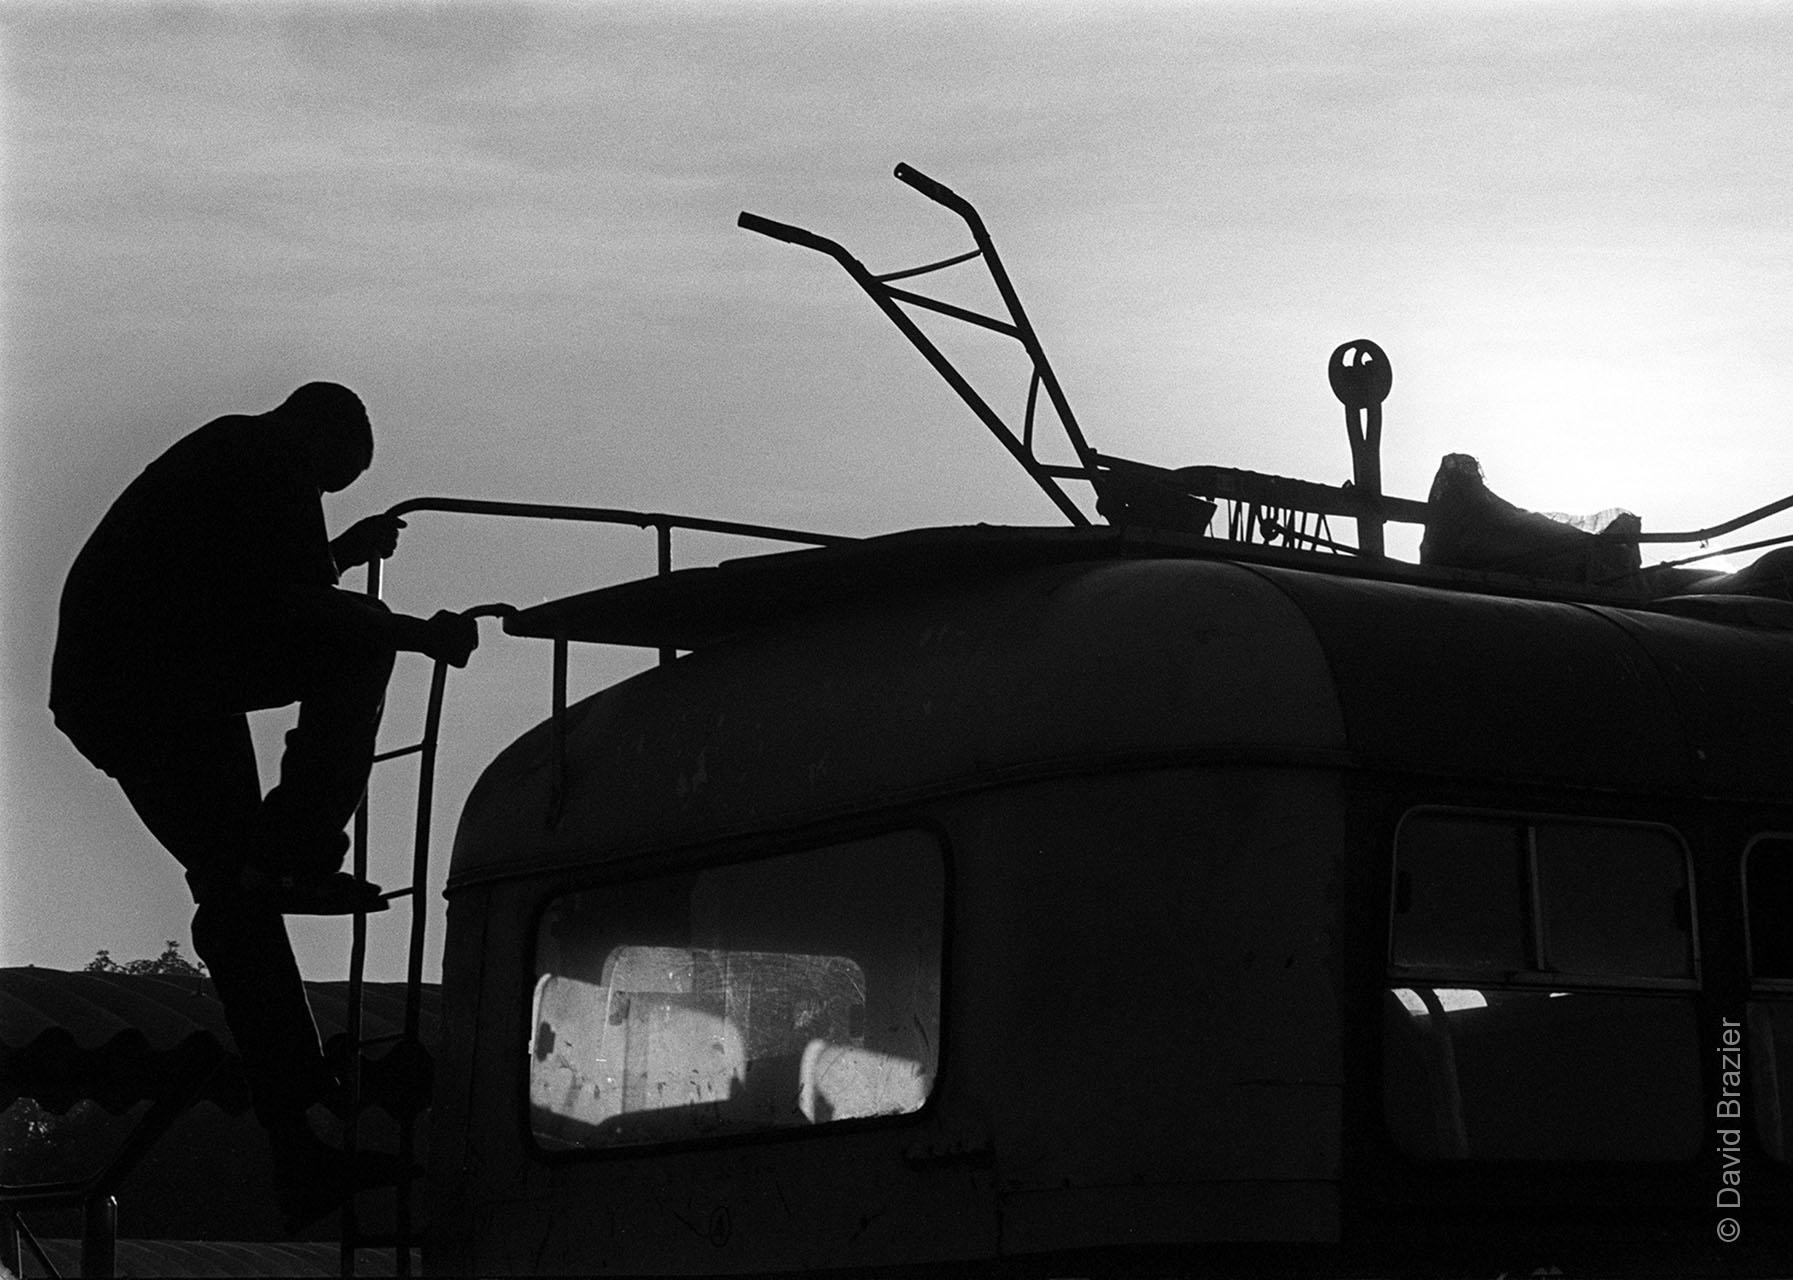 Black and white sihouette image of man climbing off the roof of a bus